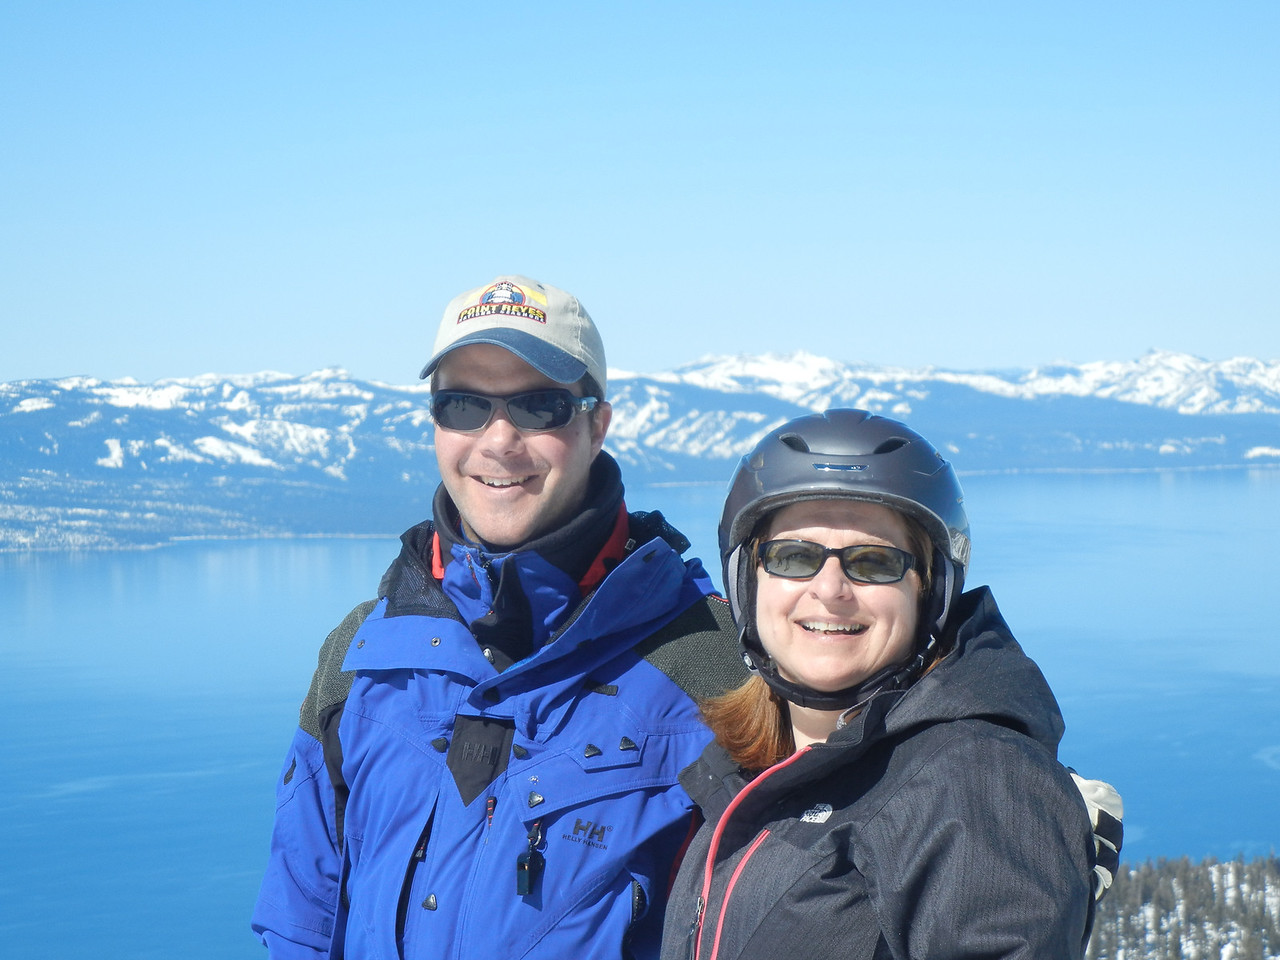 My friend Colleen Creamer and me at the top of Heavenly in March.